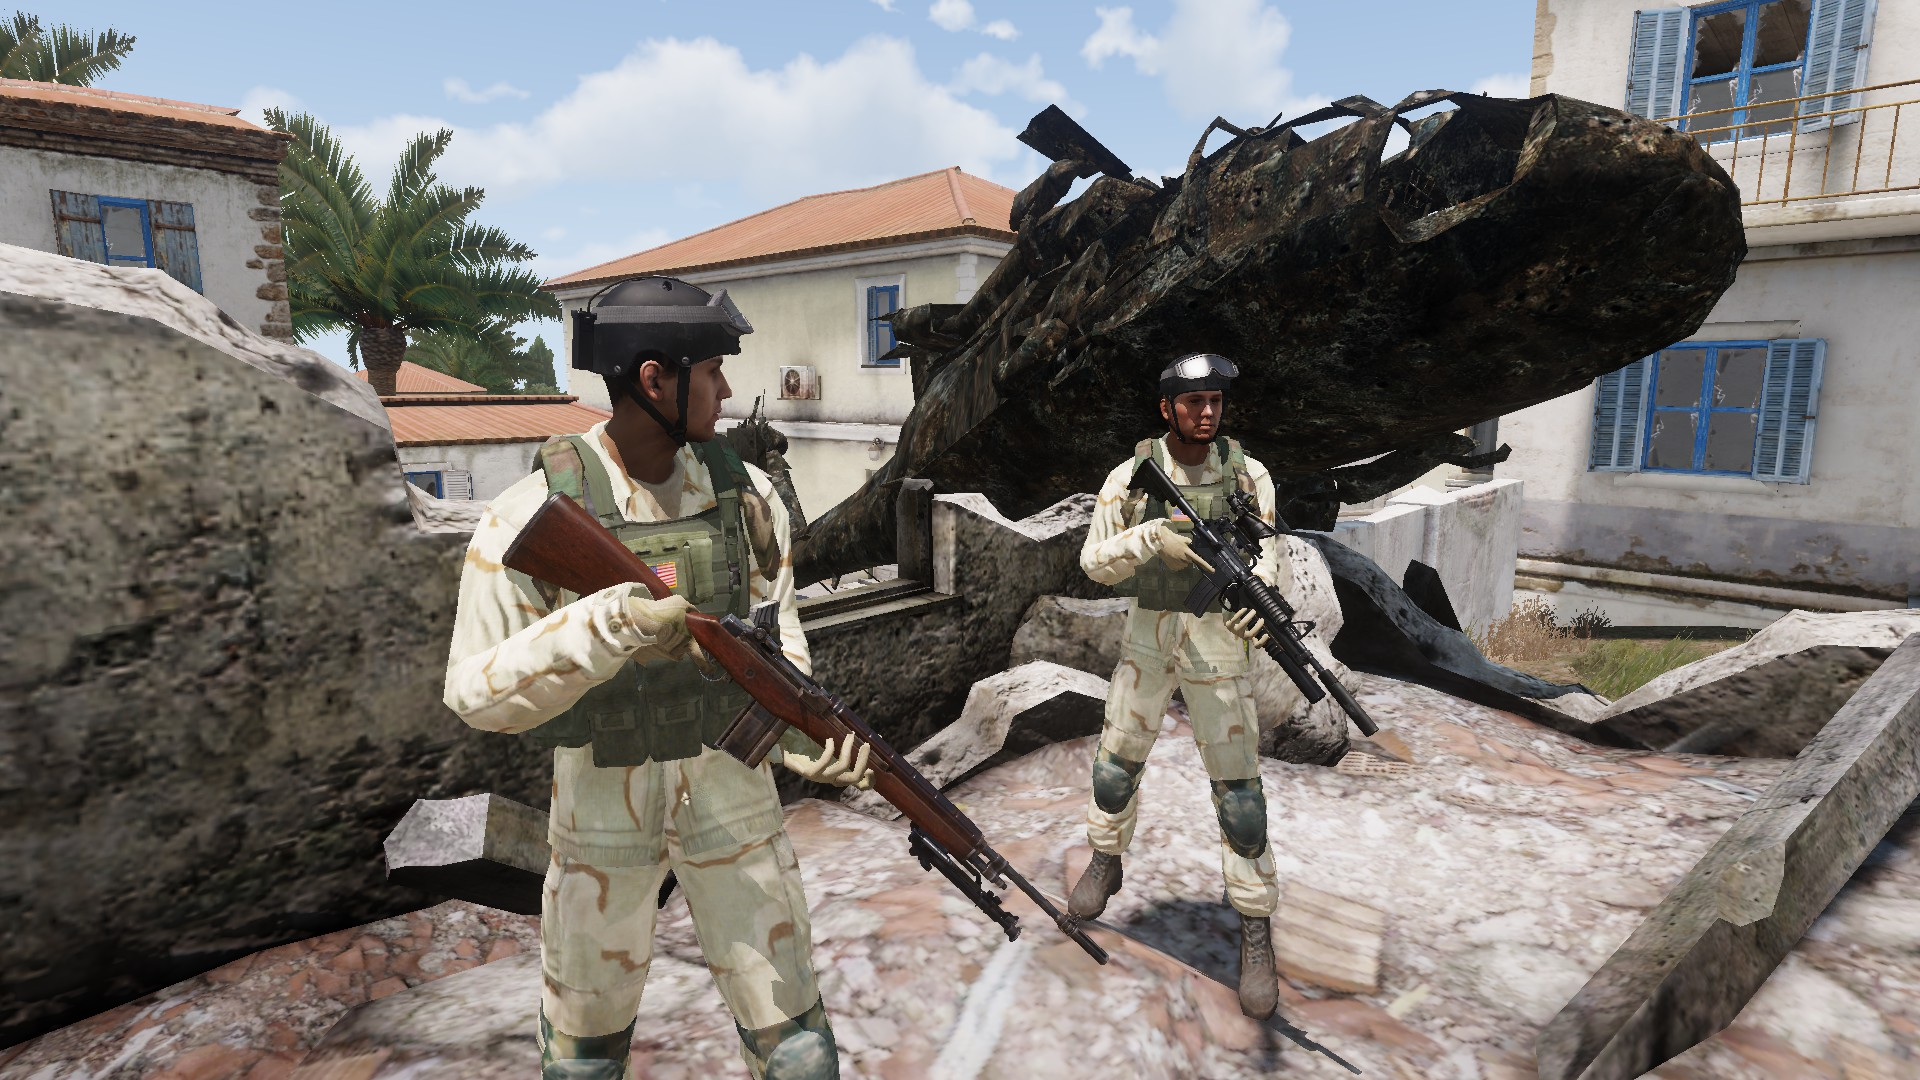 US Forces 2000s - Page 8 - ARMA 3 - ADDONS & MODS: COMPLETE